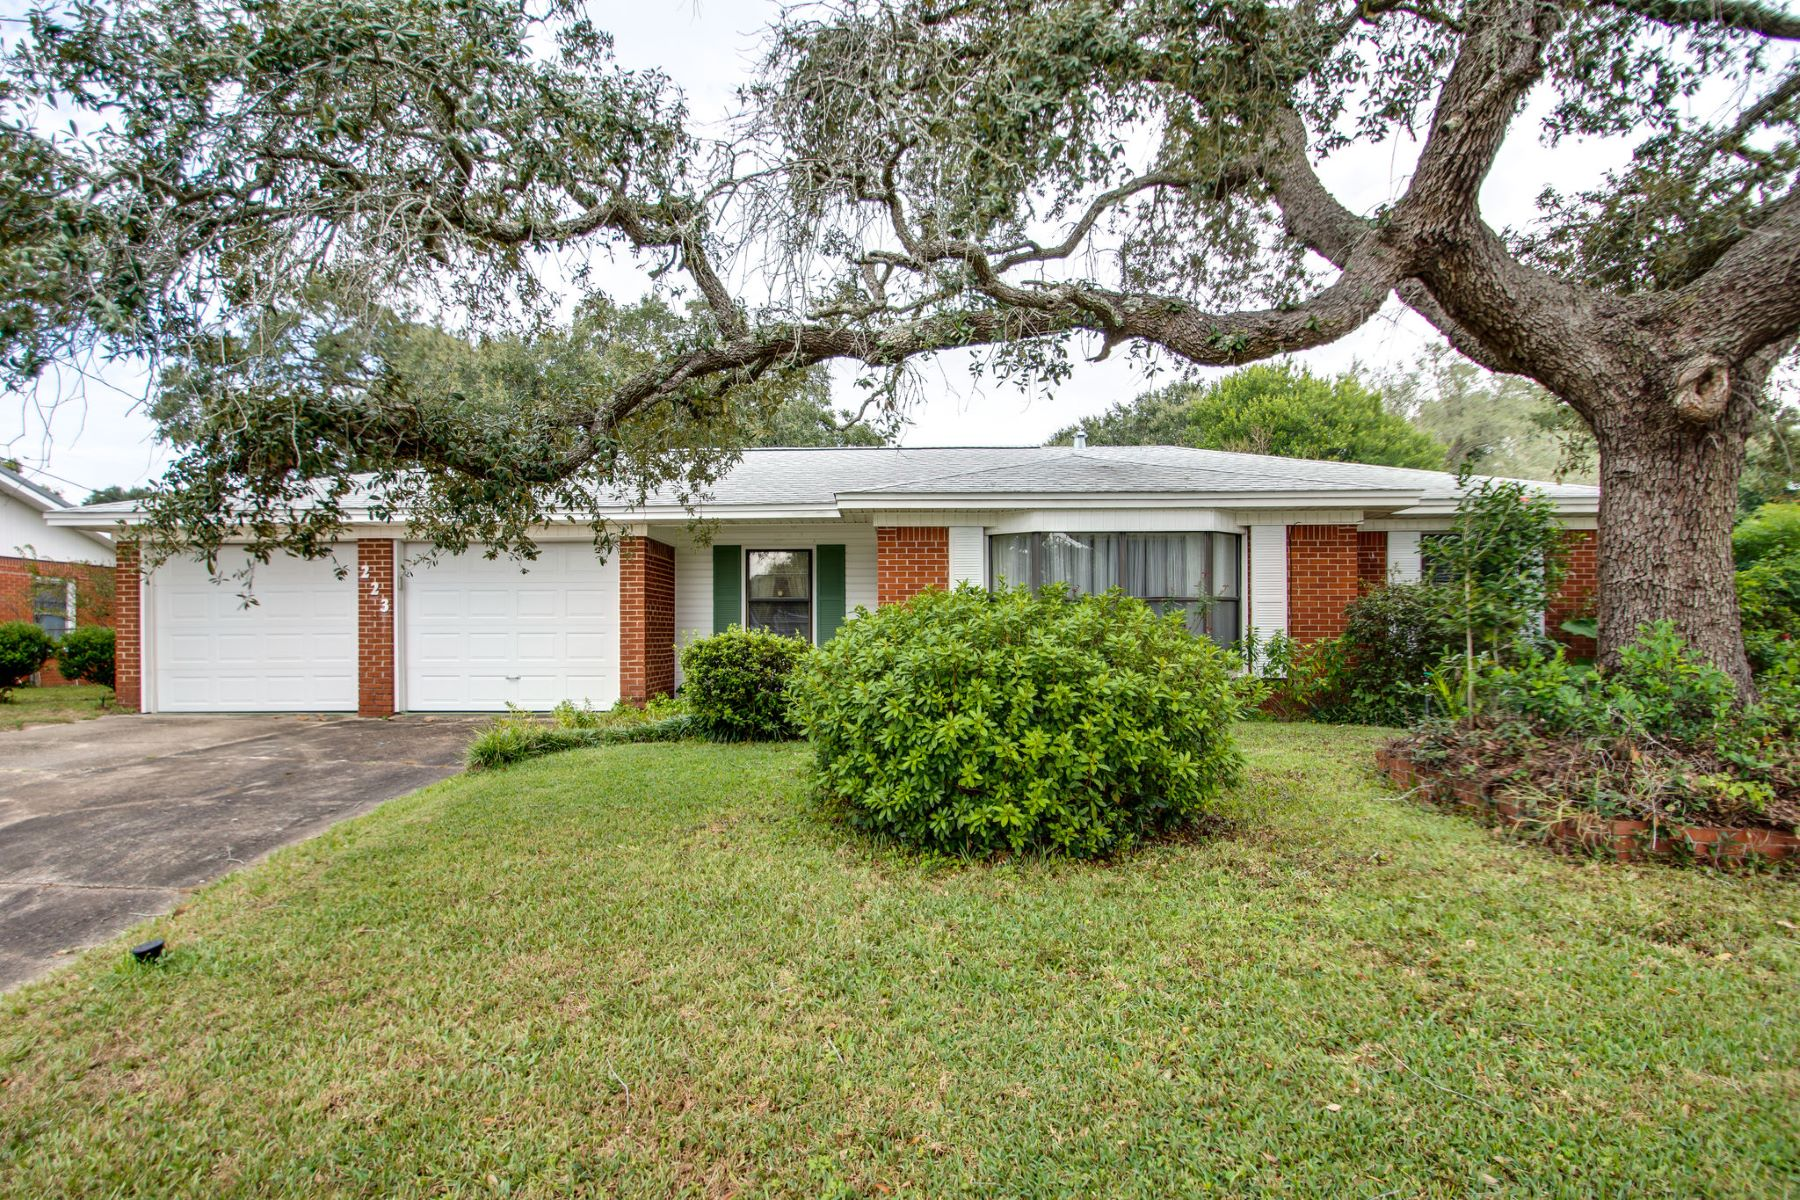 Single Family Homes for Sale at Updated 1960s Ranch Presents Opportunity to Build Equity 223 Holmes Boulevard Northwest Fort Walton Beach, Florida 32548 United States